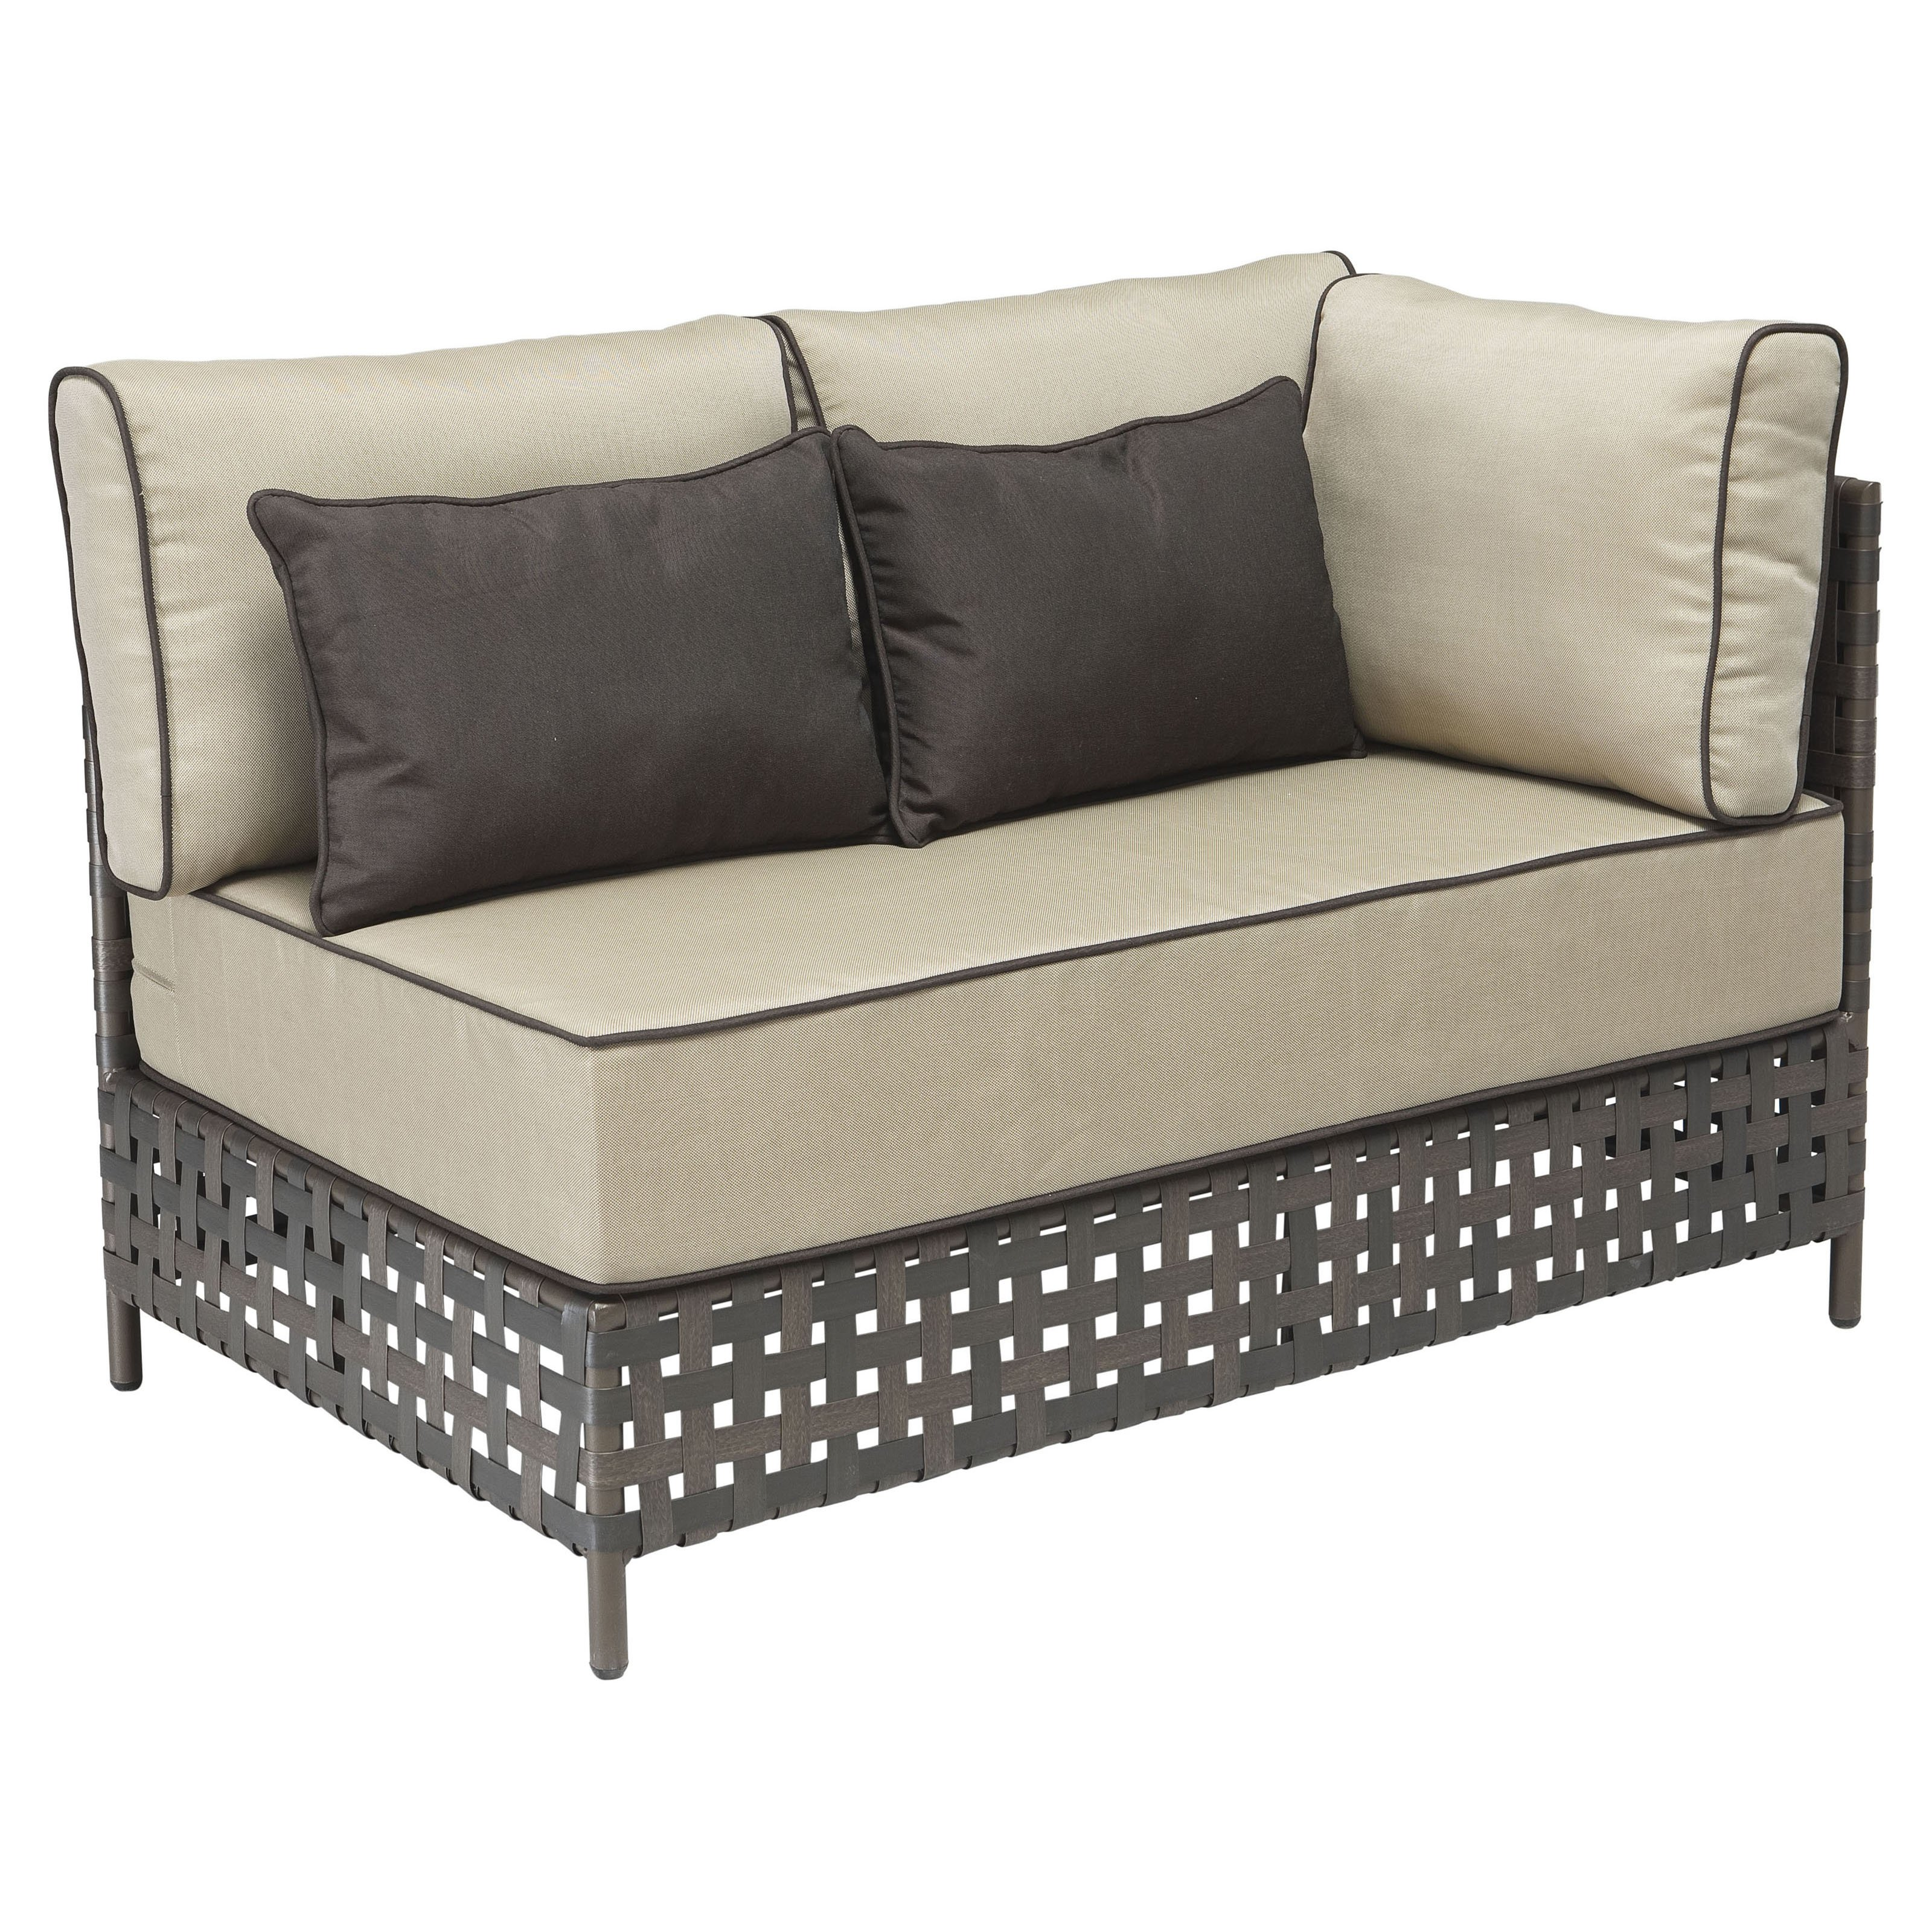 Zuo Vive Pinery Long All-Weather Wicker Right Corner Chaise